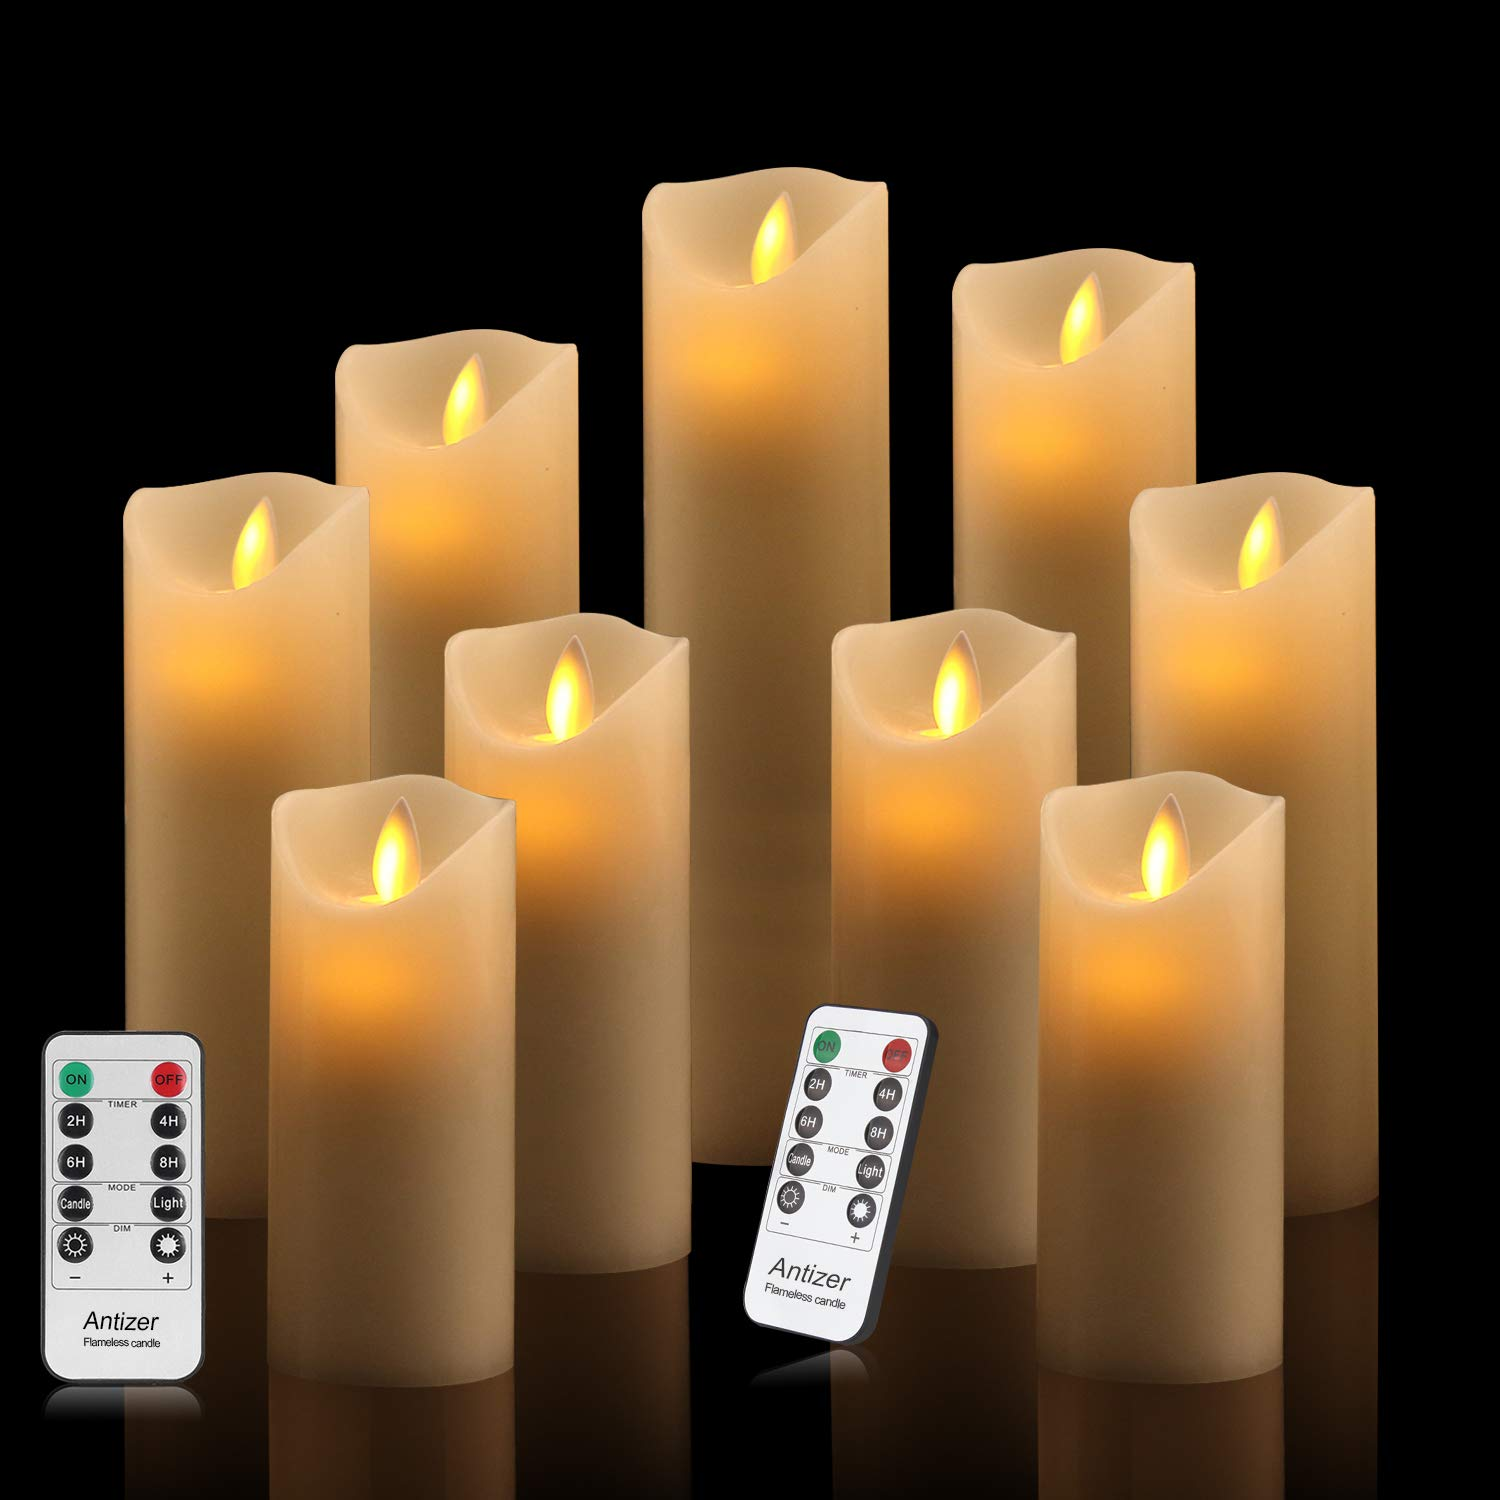 Antizer Flameless Candles Set of 9 Ivory Dripless Real Wax Pillars Include Realistic Dancing LED Flames and 10-Key Remote Control with 24-Hour Timer Function 400+ Hours by 2 AA Batteries by Antizer